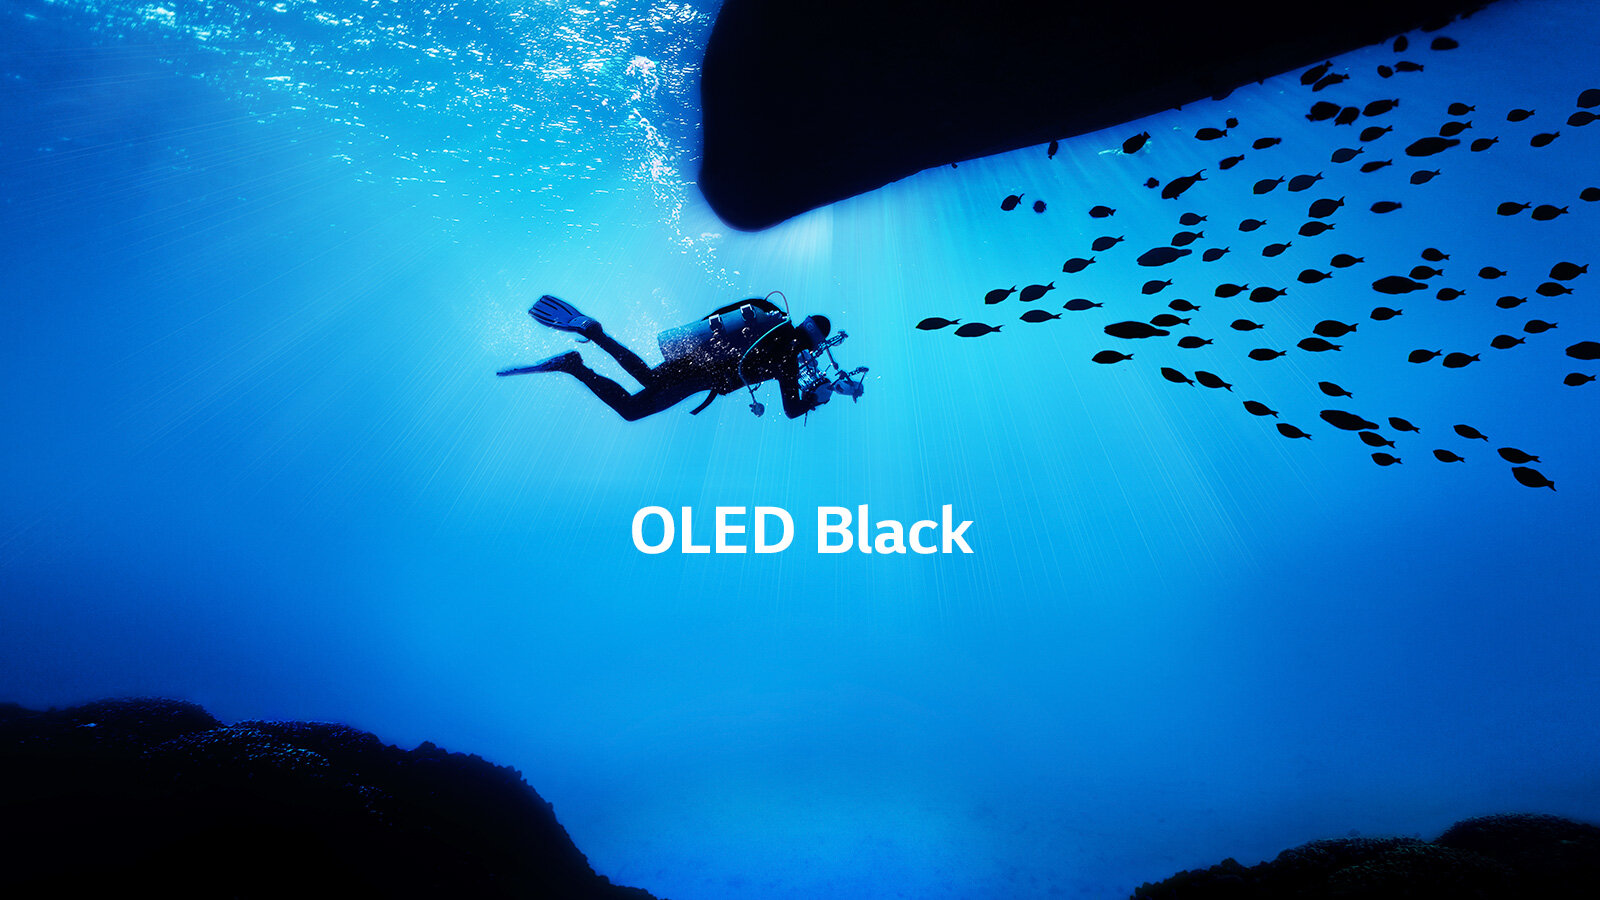 Perfect Colour on Perfect Black - OLED pixels create an astonishingly accurate and wide colour range which is presented on the perfect black background only available from self emitting pixels.